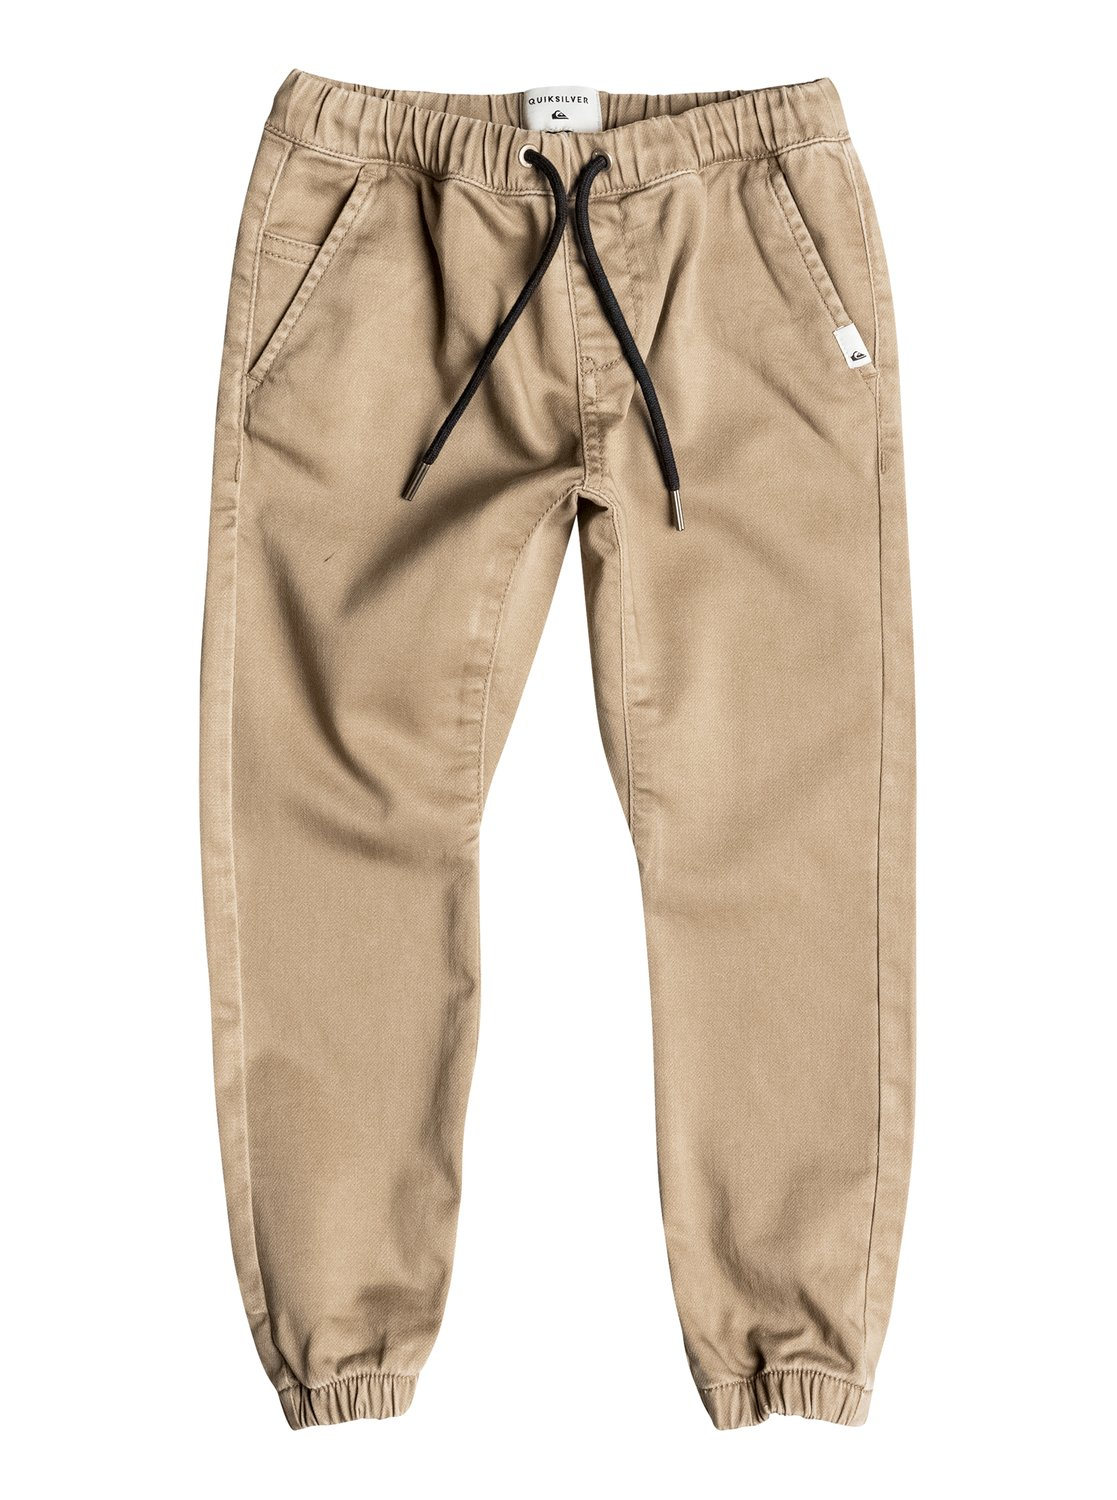 Chino Joggingbroek Heren.Fonic Chino Joggingbroek Eqknp03029 Quiksilver